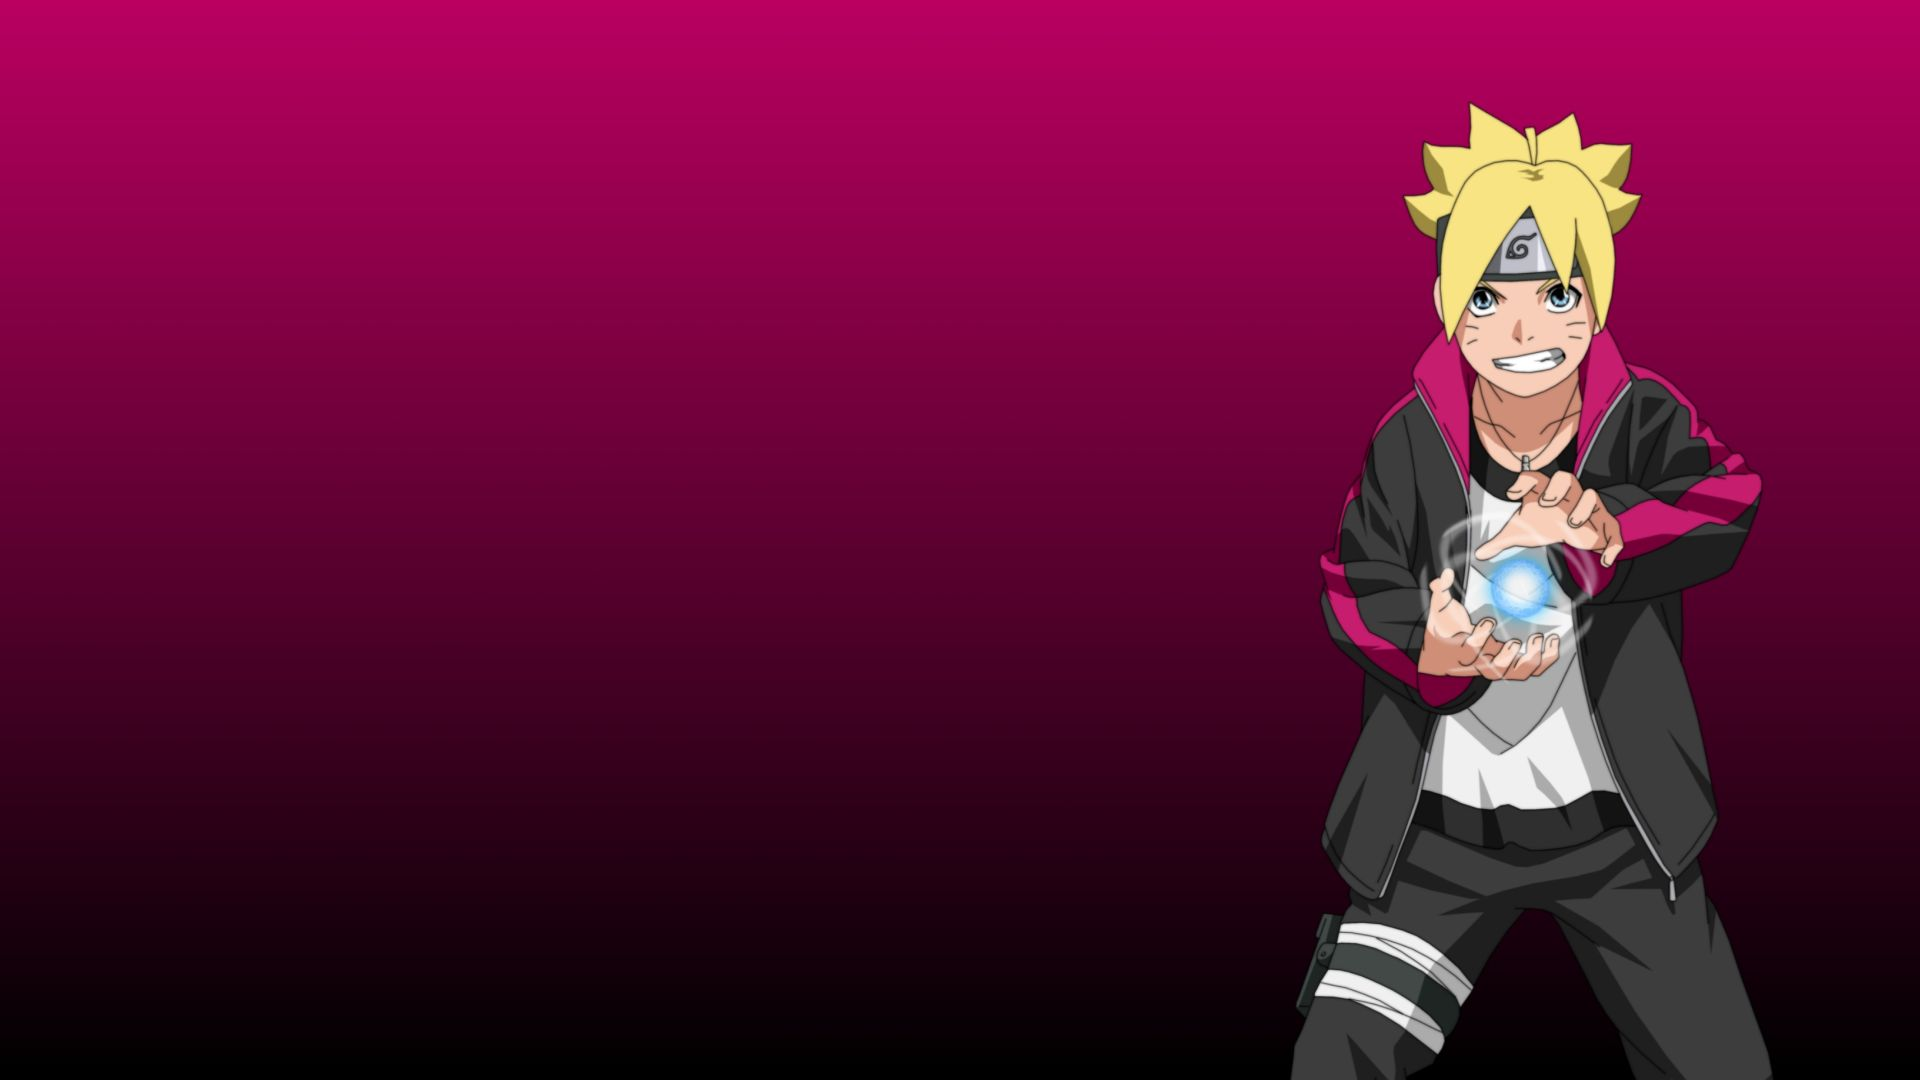 Naruto Desktop, Free Wallpaper and Background